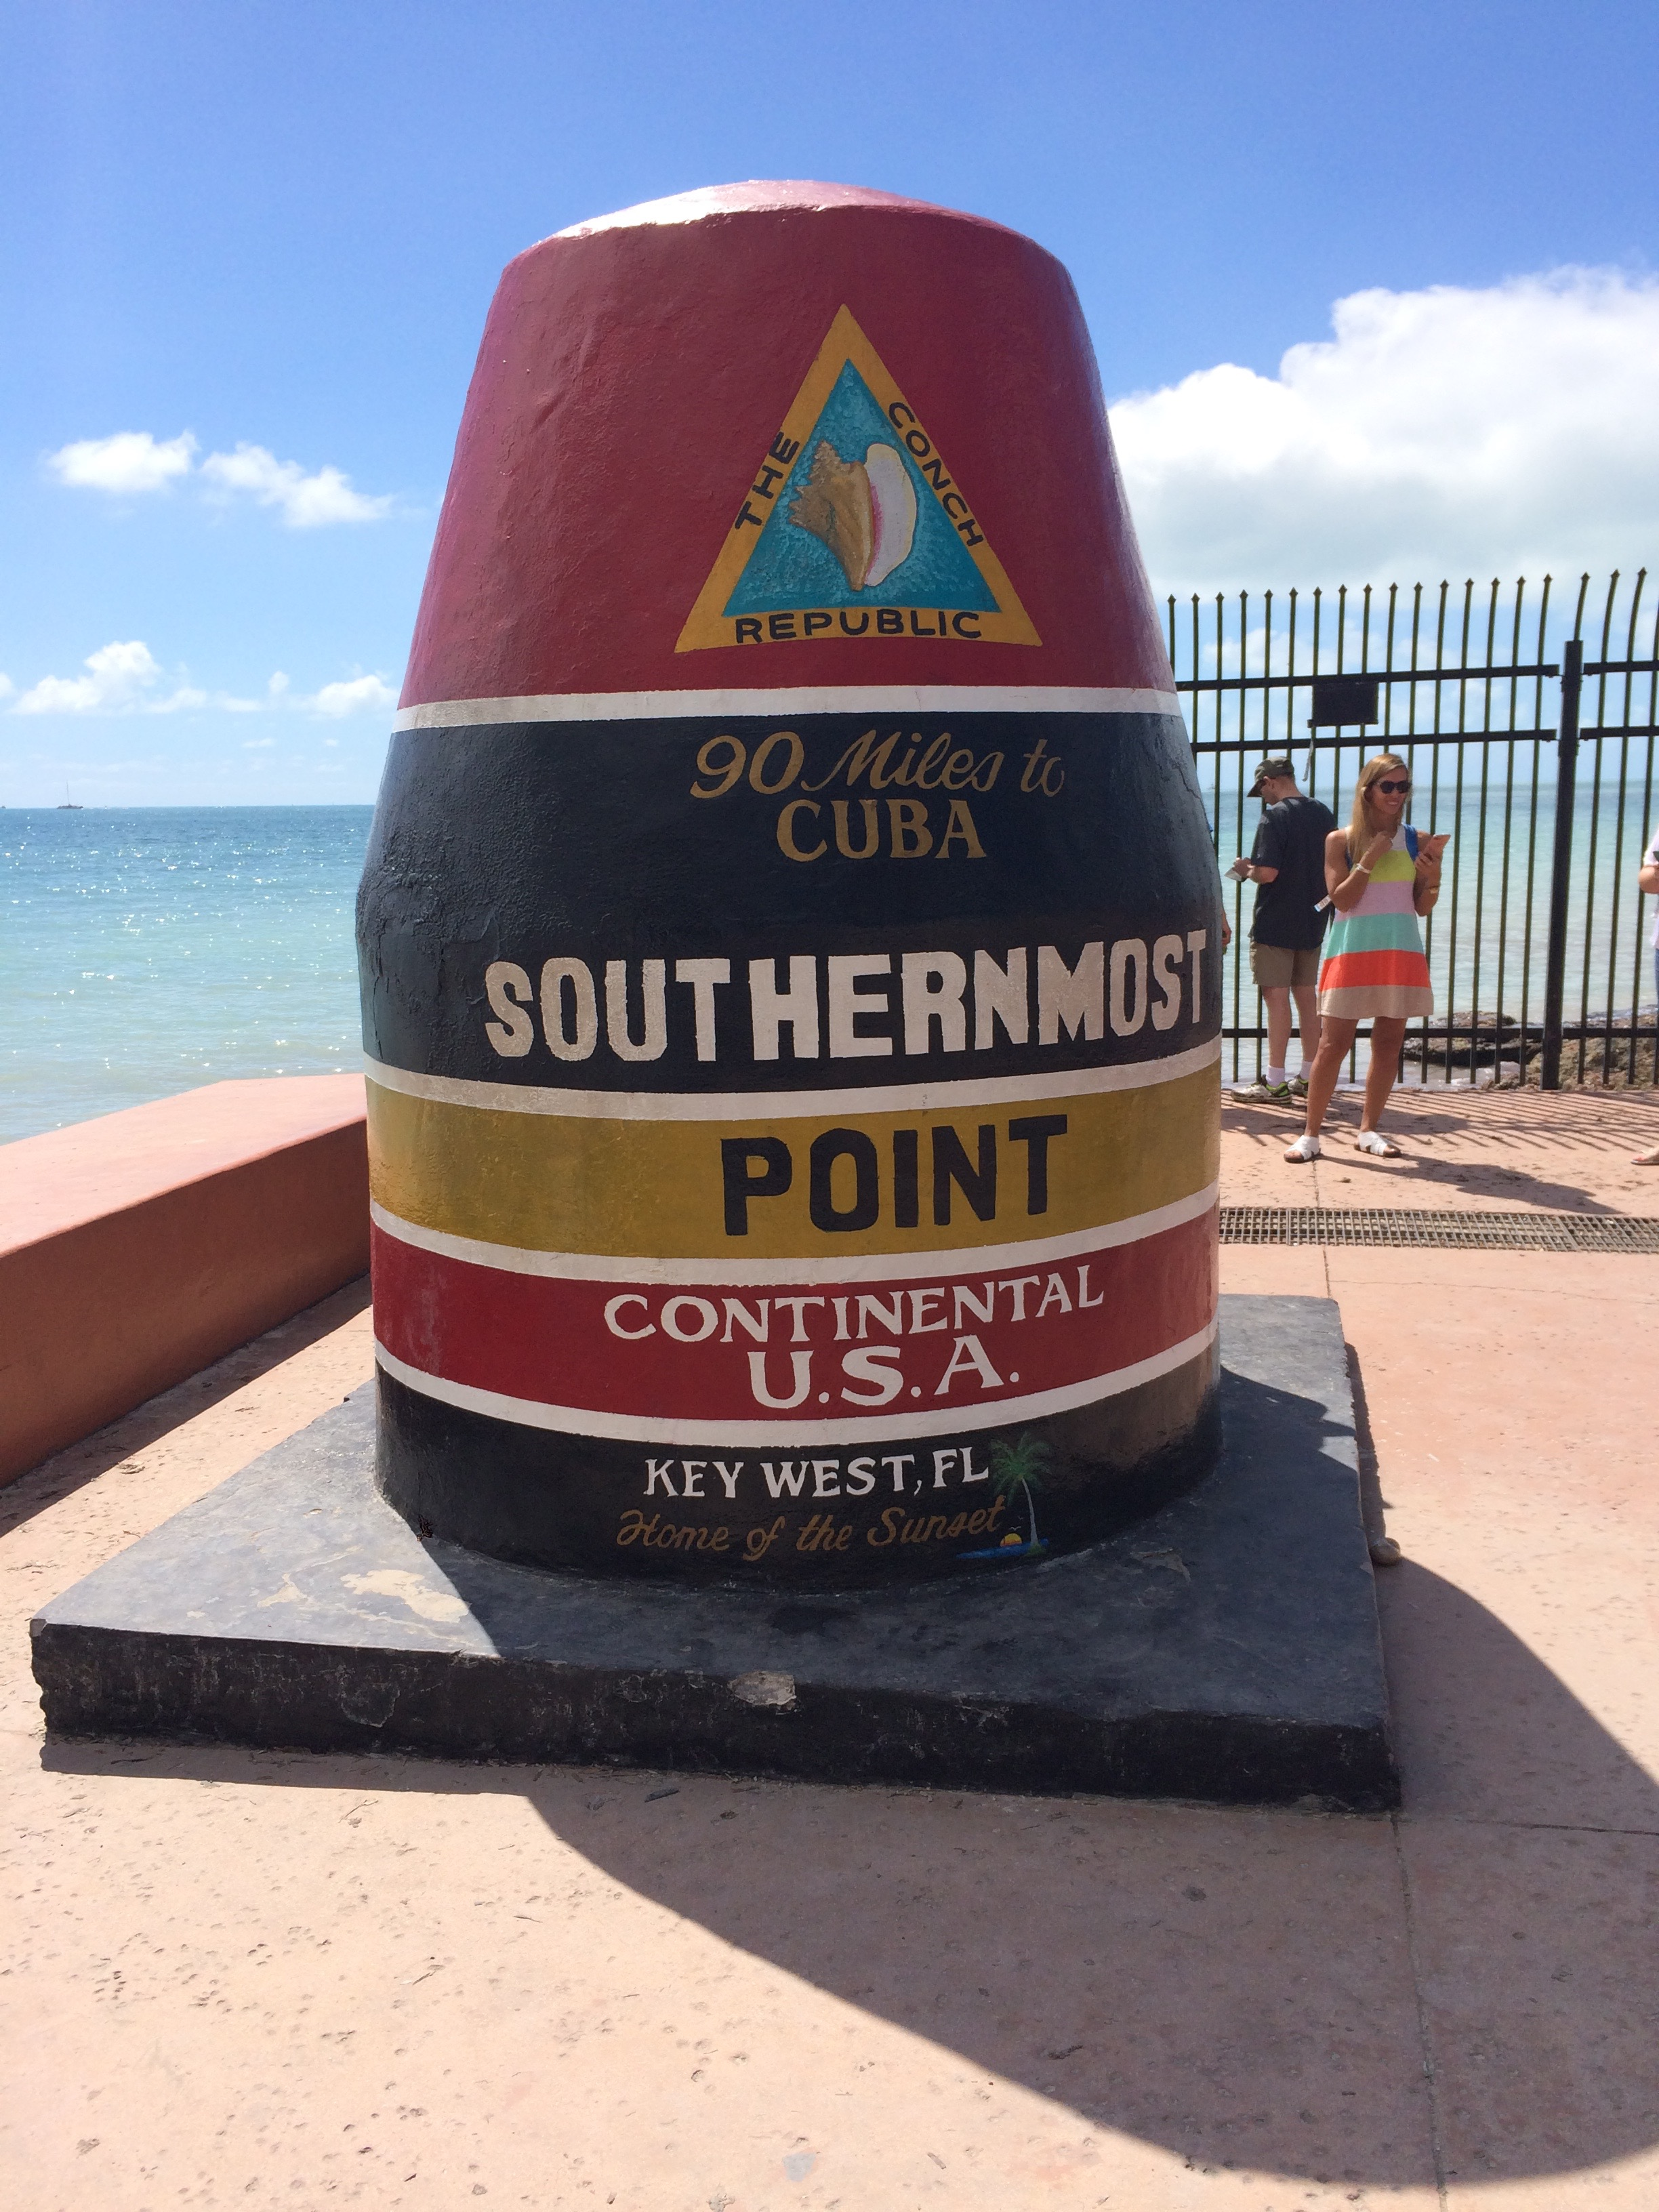 The southernmost point in the USA, Key West, FL